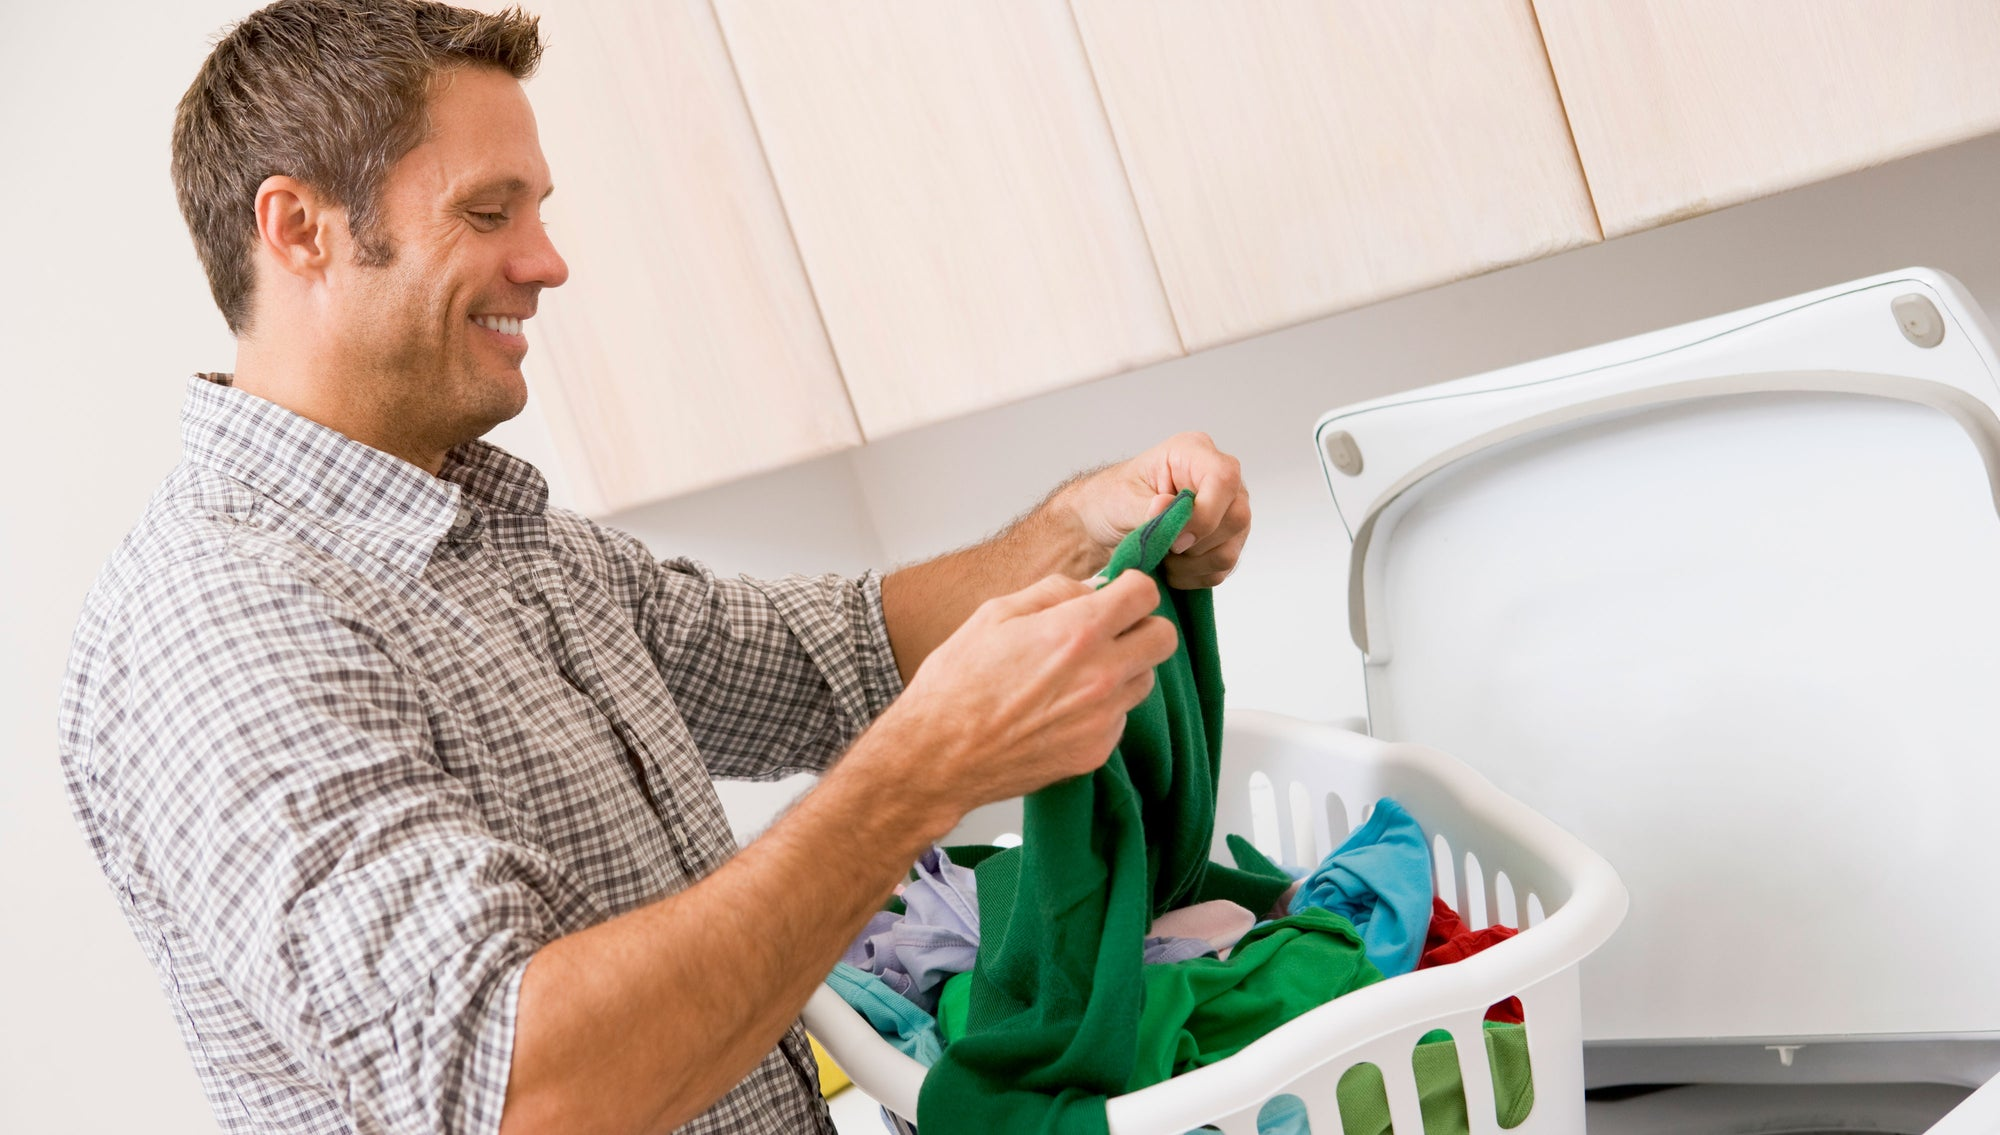 best laundry detergent for body odor